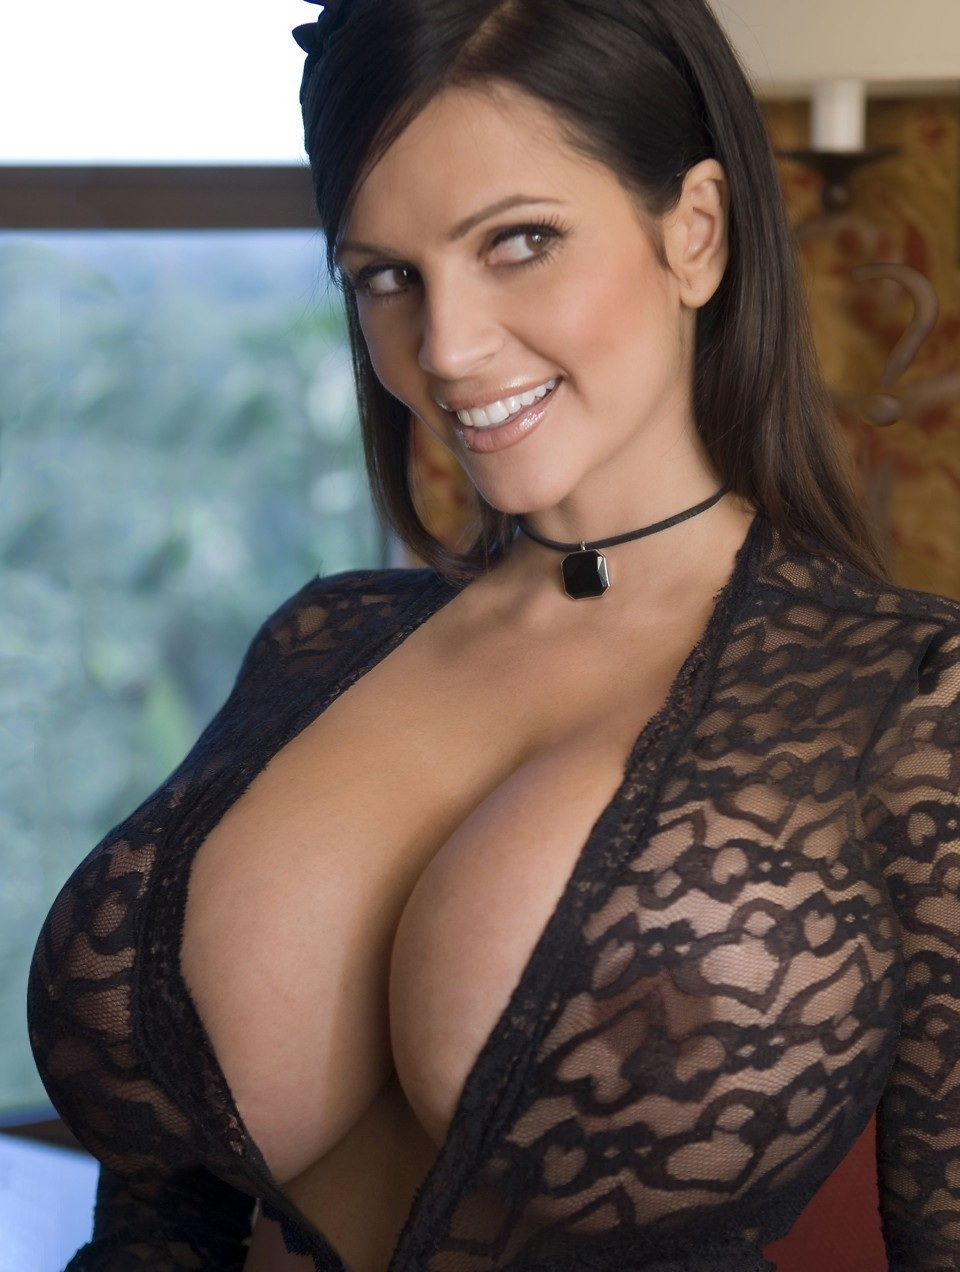 big-tits-movies-denise-milani